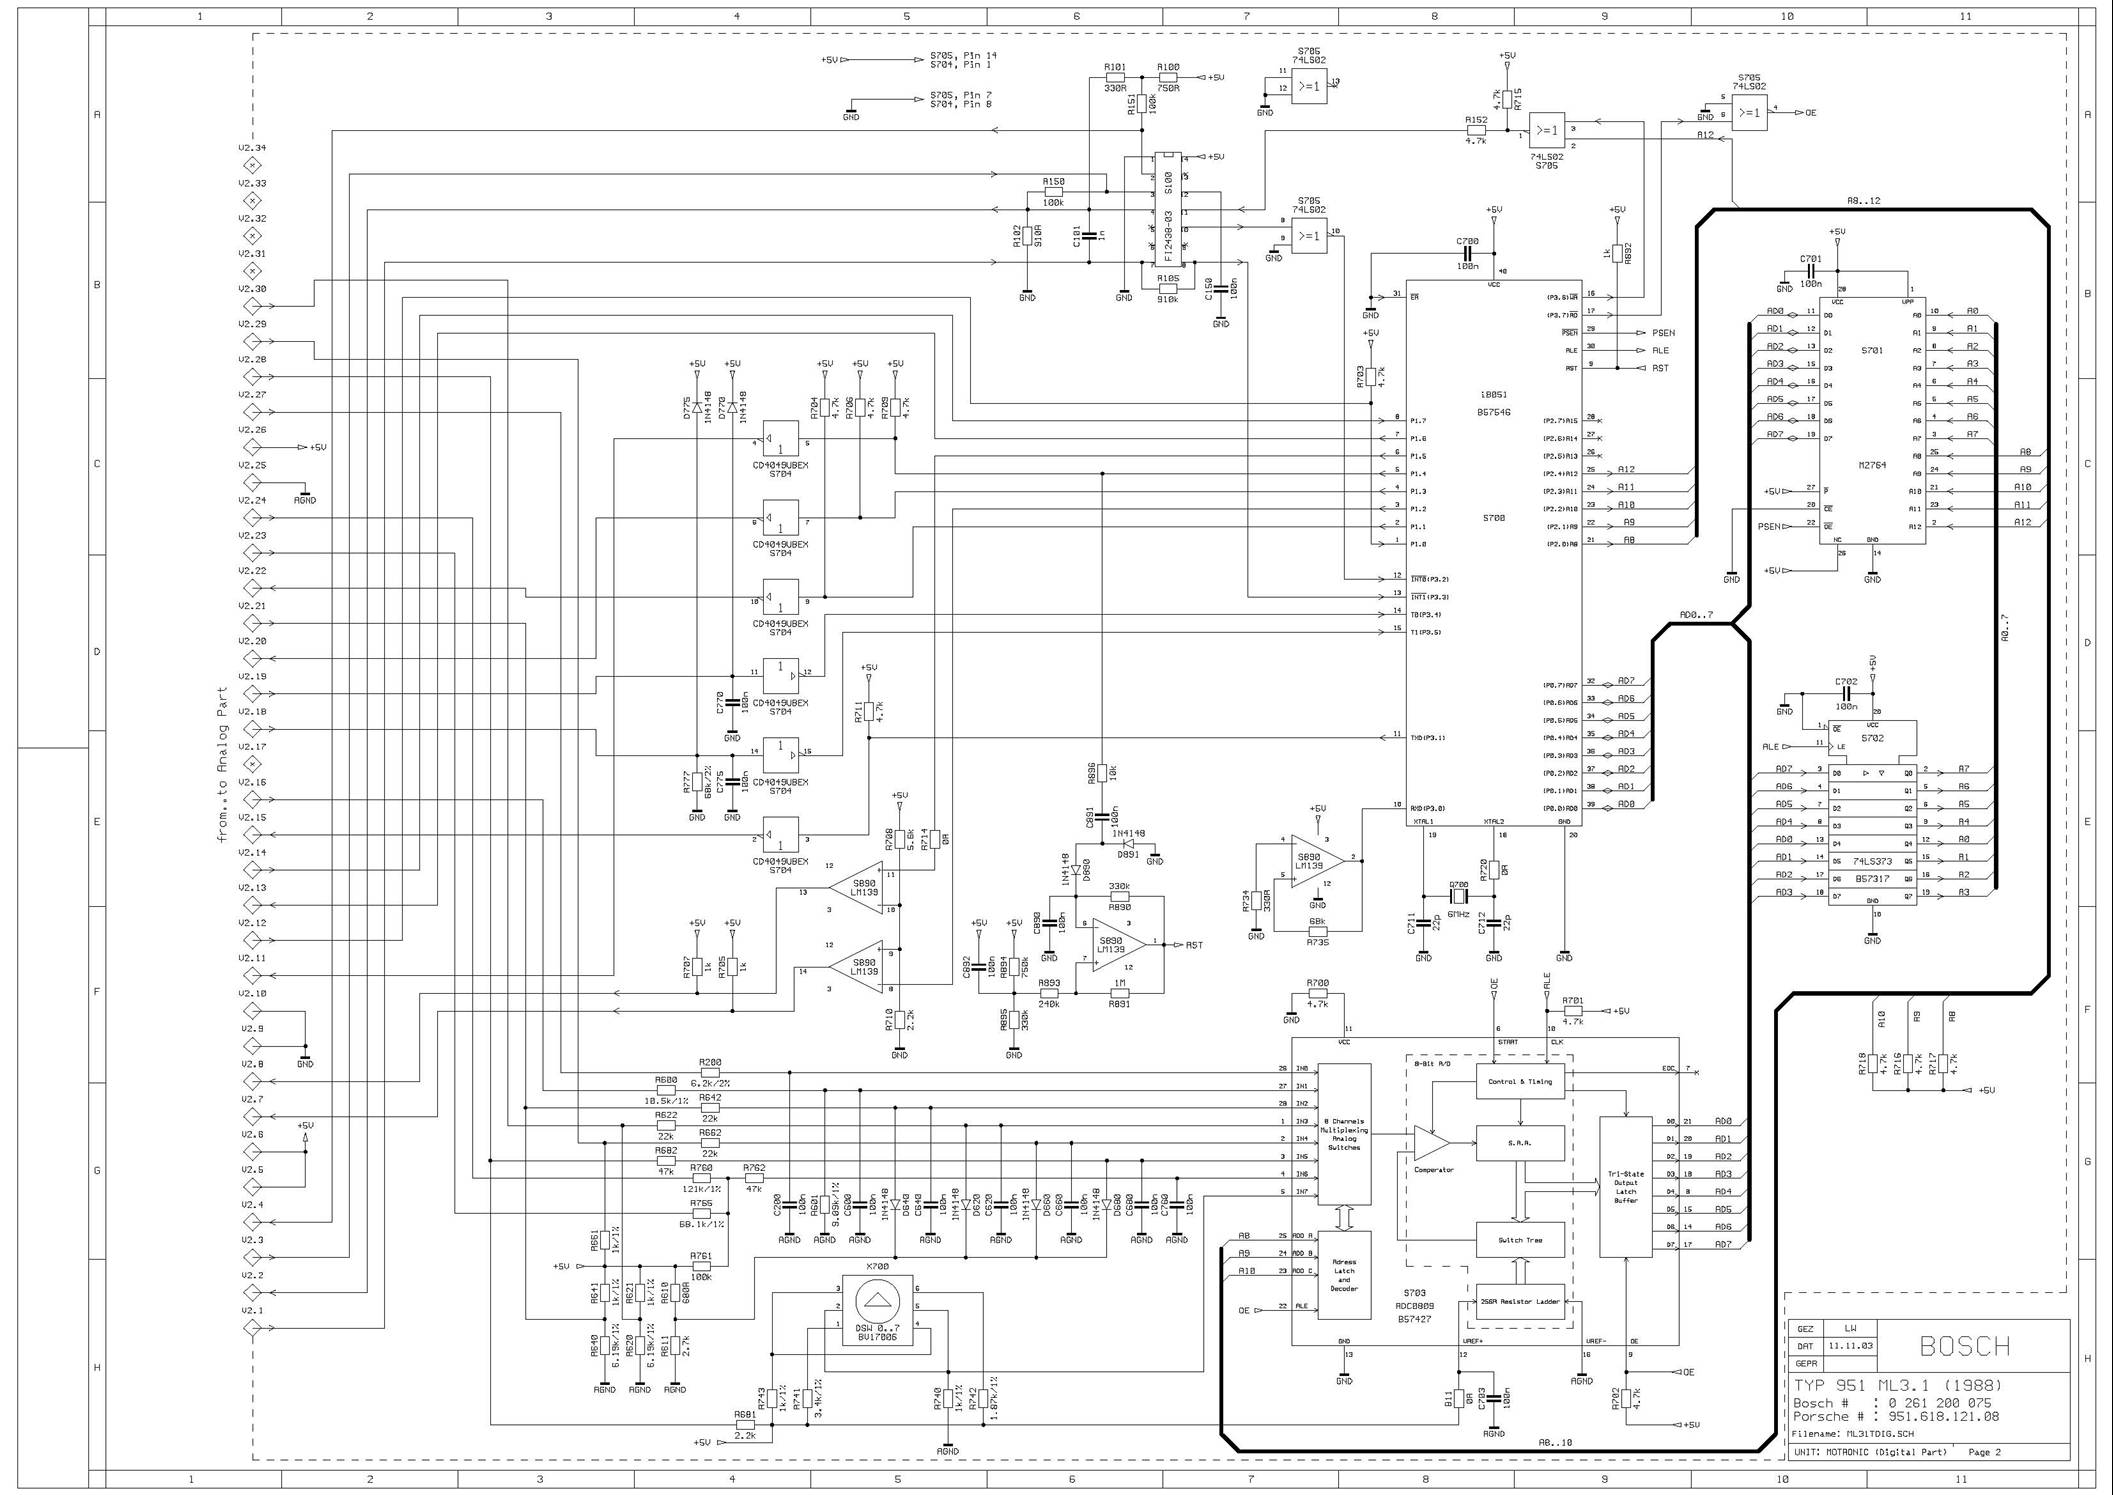 dme wiring diagram turbo the following are wiring diagrams for the 944 turbo dme currently wiring diagrams for the klr are not available when they become available